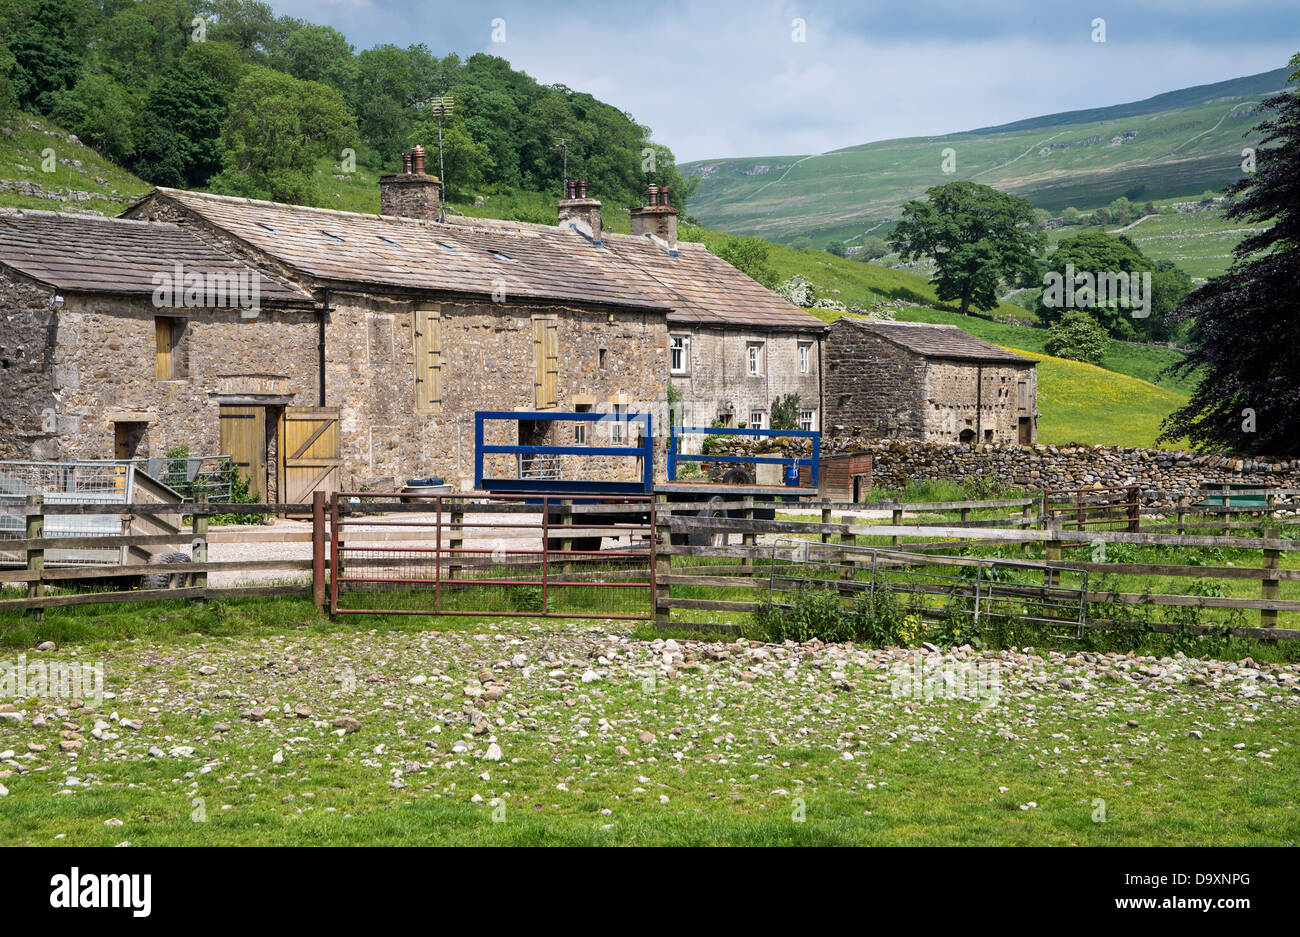 Dales Farm in the tiny hamlet of Hubberholme, Wharfedale, Yorkshire, on the Dales Way Long Distance Footpath Stock Photo